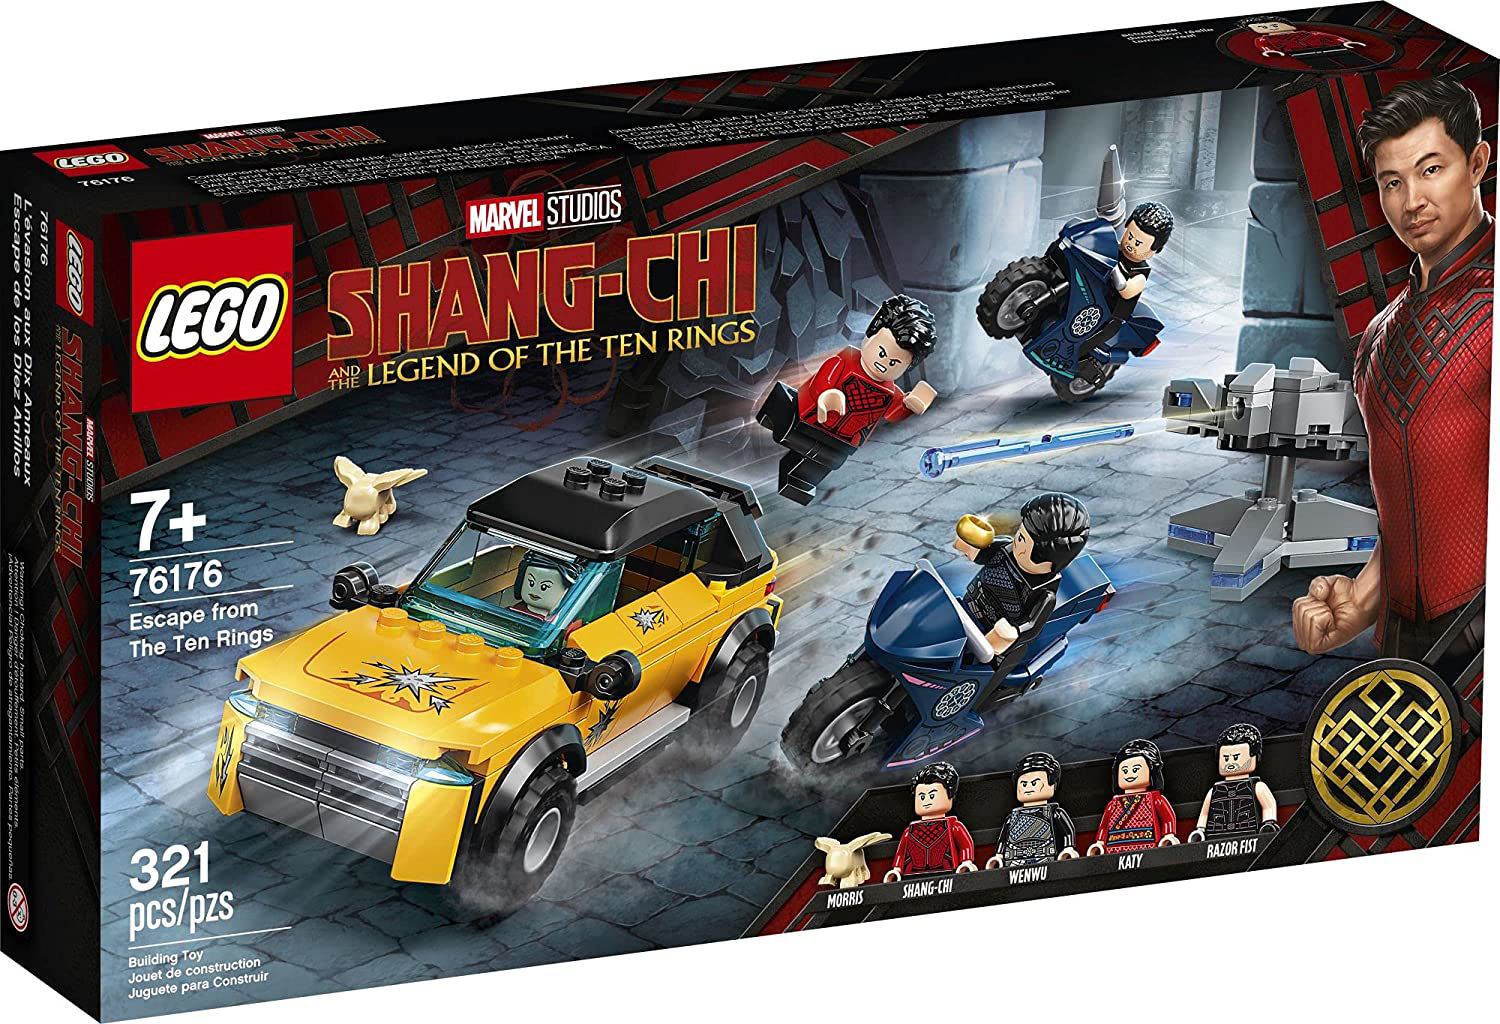 Lego Escape from The Ten Rings 76176